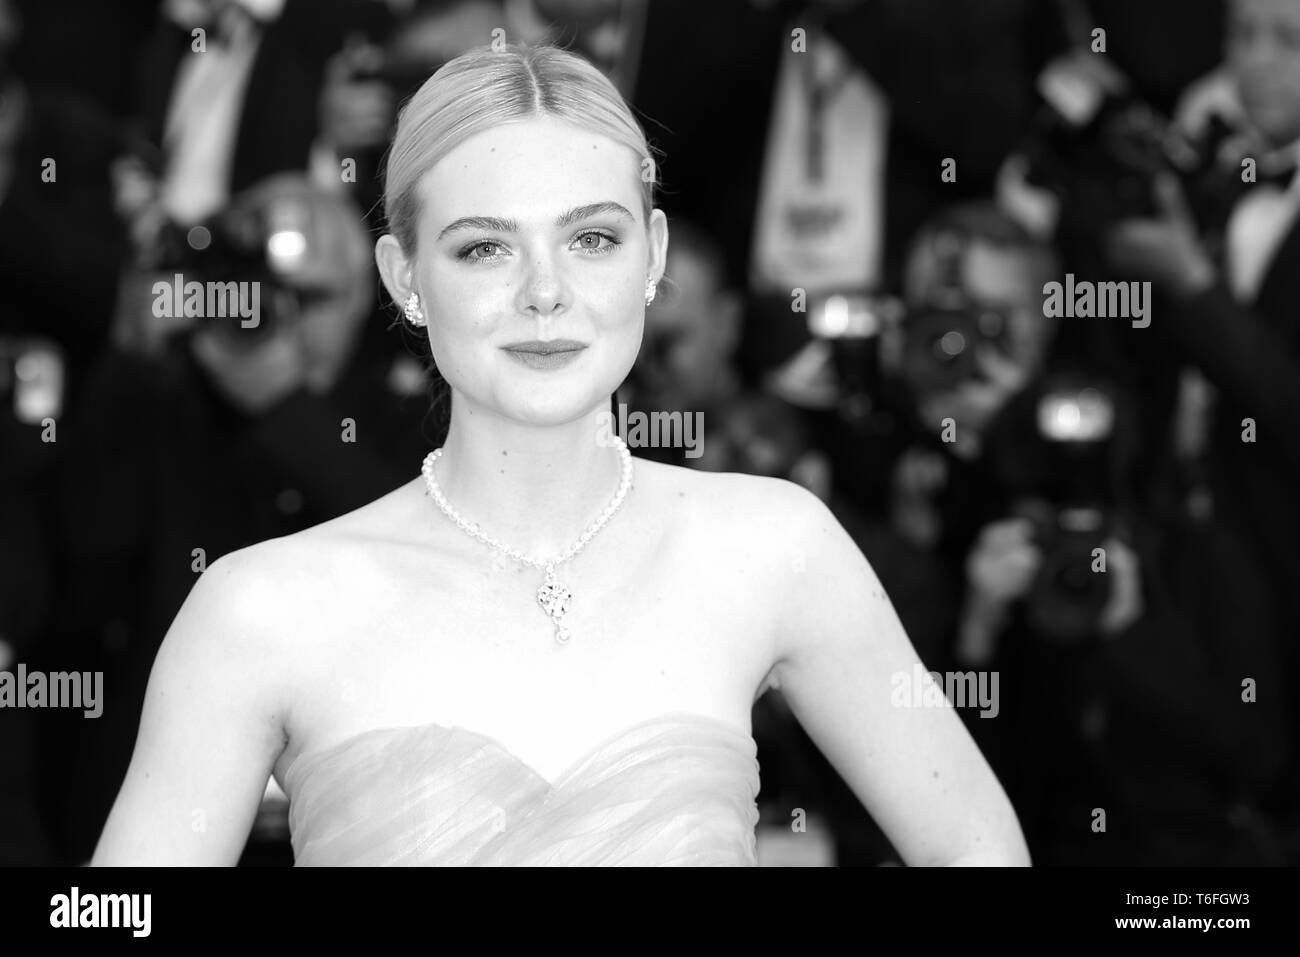 CANNES, FRANCE – MAY 24, 2017: Elle Fanning attends 'The Beguiled' screening at the 70th Cannes Film Festival (Photo: Mickael Chavet) - Stock Image